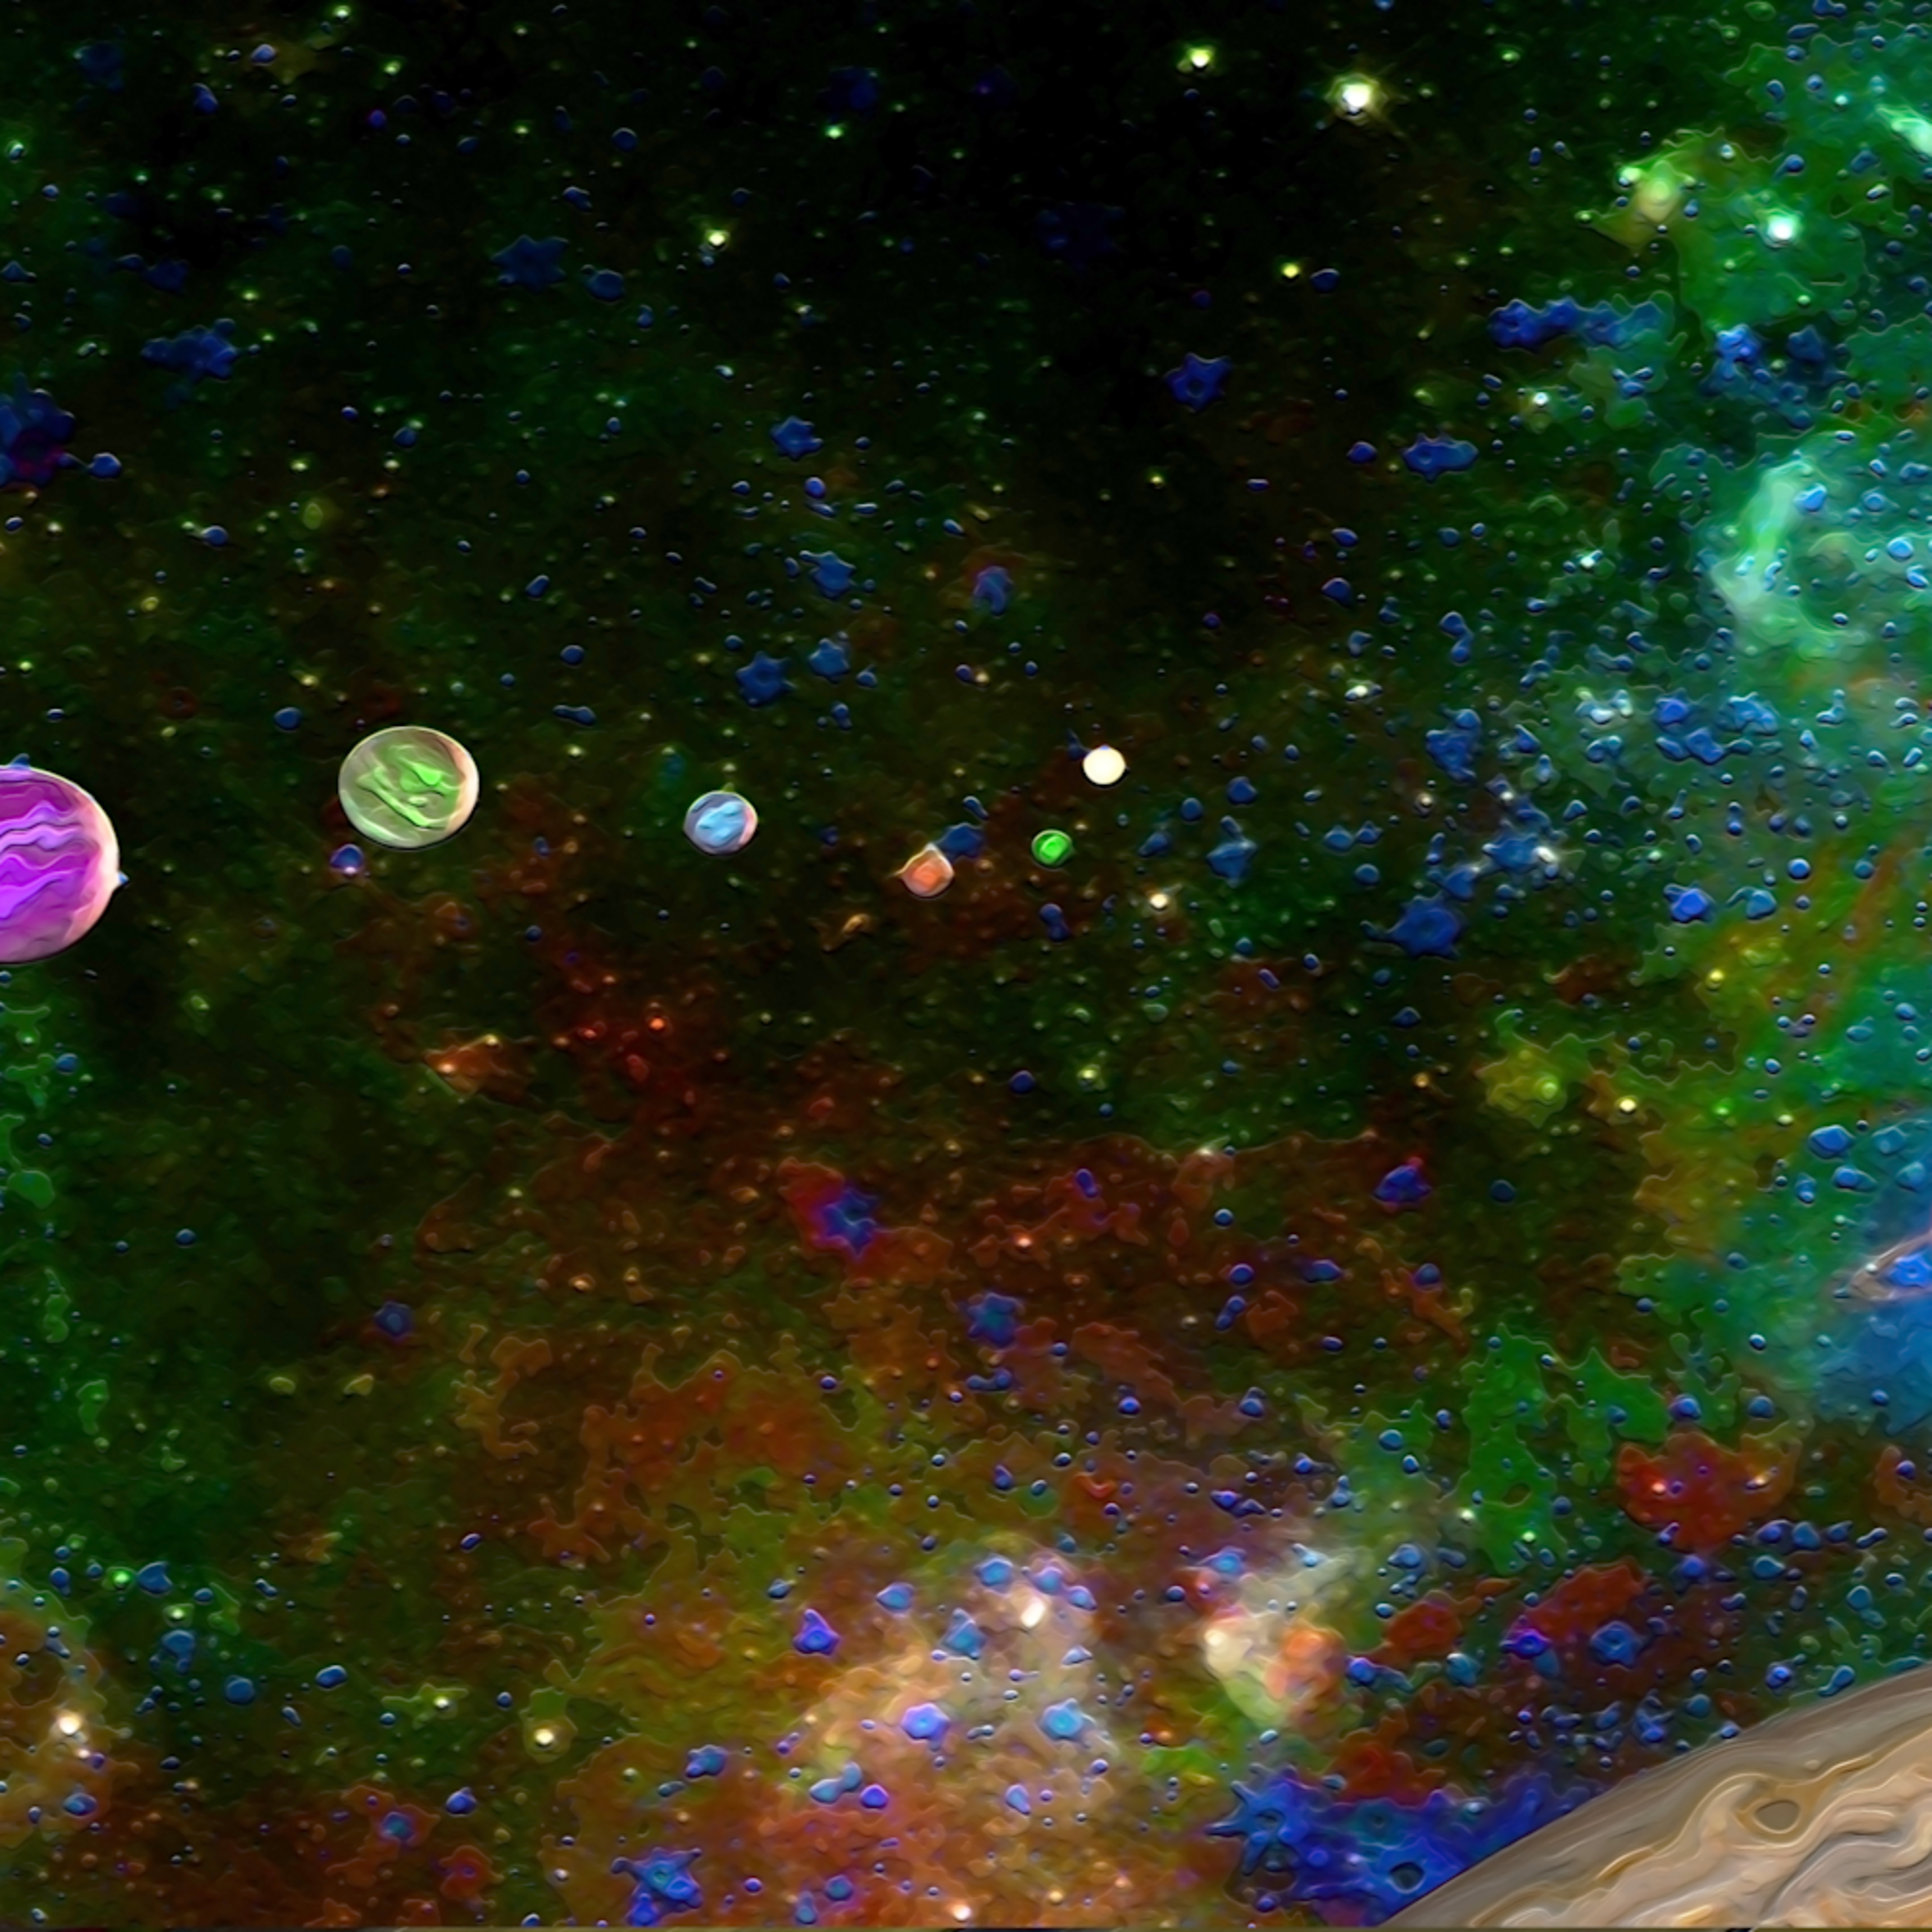 Parade of planets fqo4rf